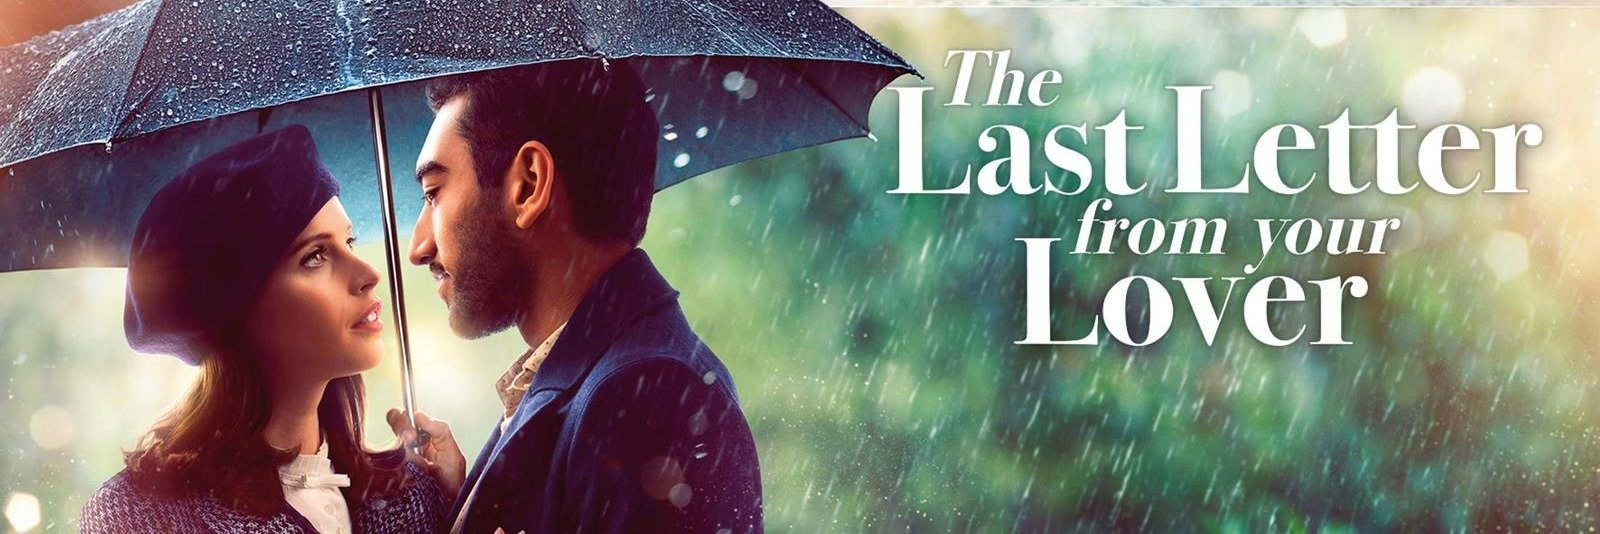 Przedstawiamy: The Last Letter from Your Lover (Original Motion Picture Soundtrack)